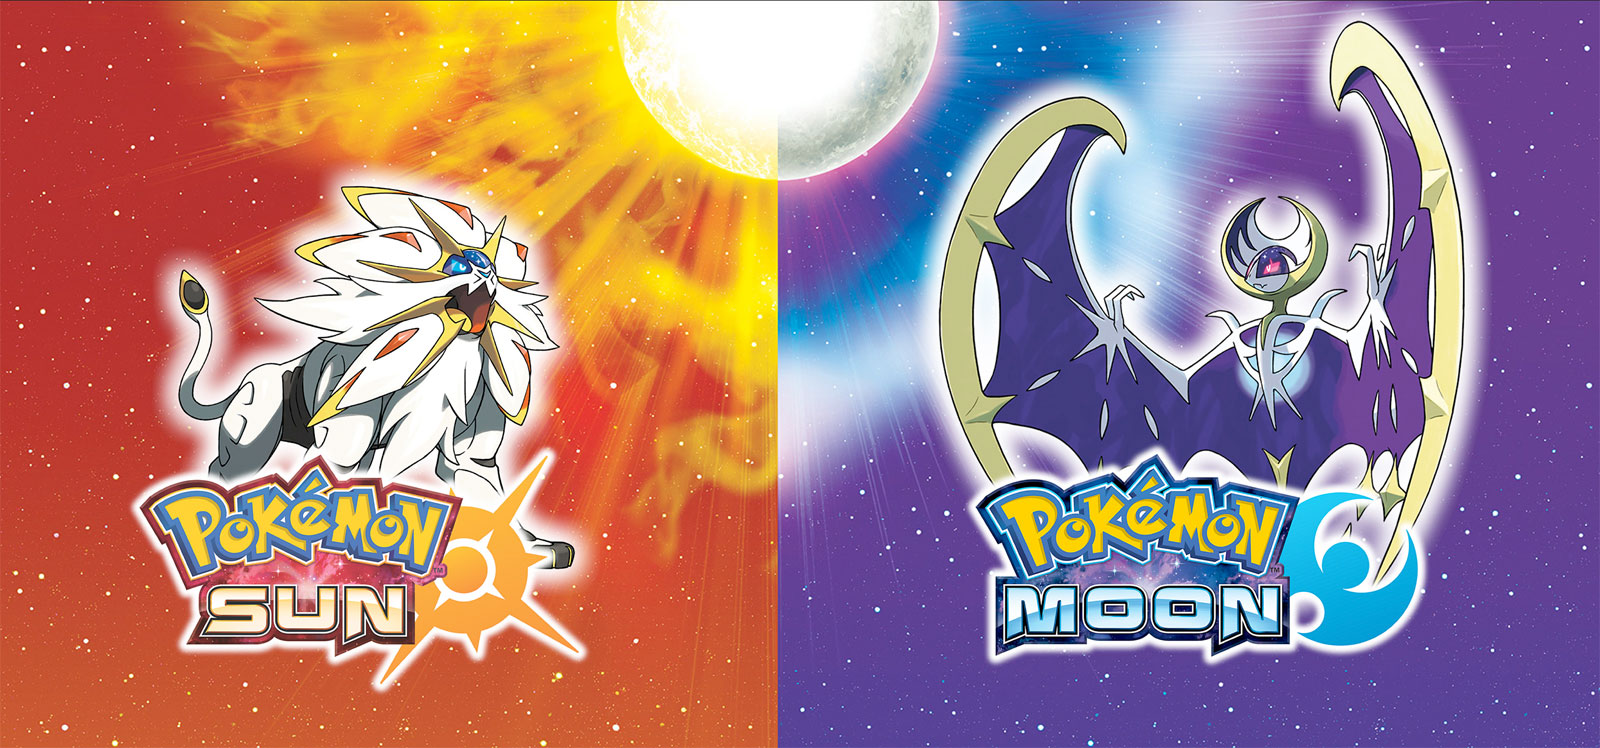 Pokemon Sun and Moon games